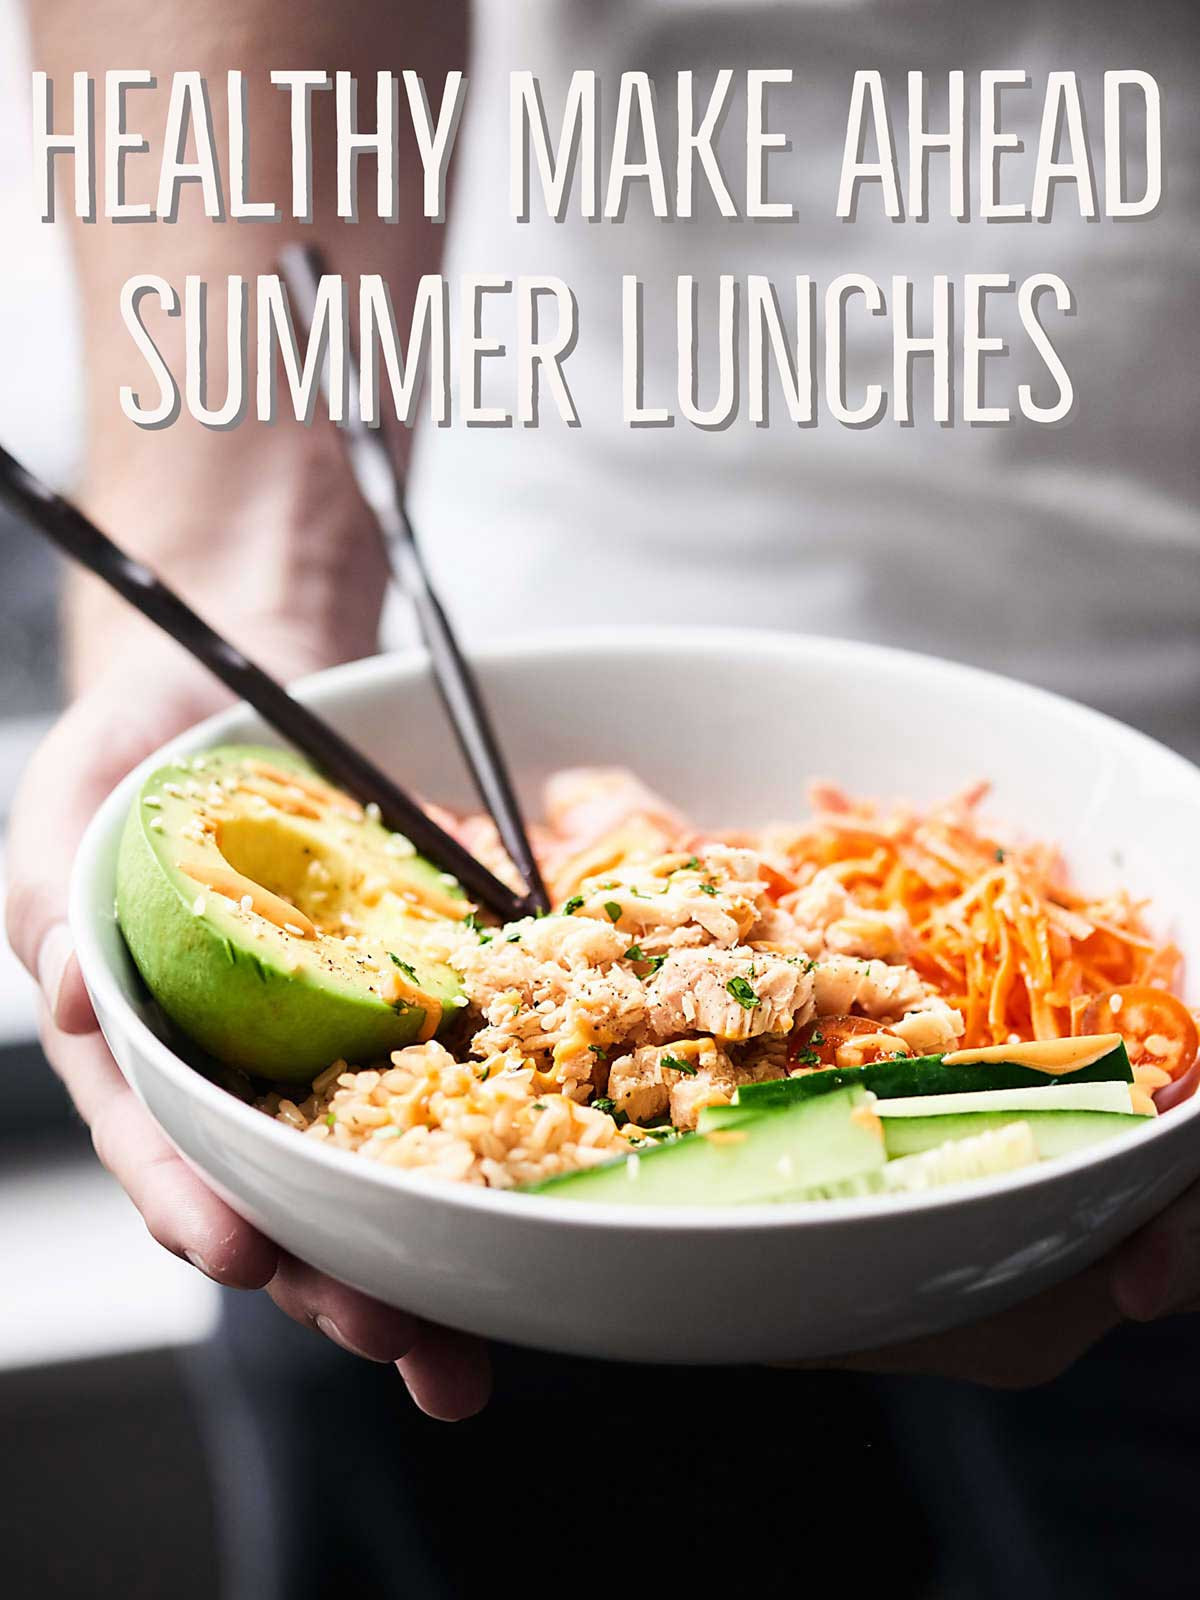 Make Ahead Healthy Lunches  Easy Healthy Make Ahead Summer Lunches That Aren t All